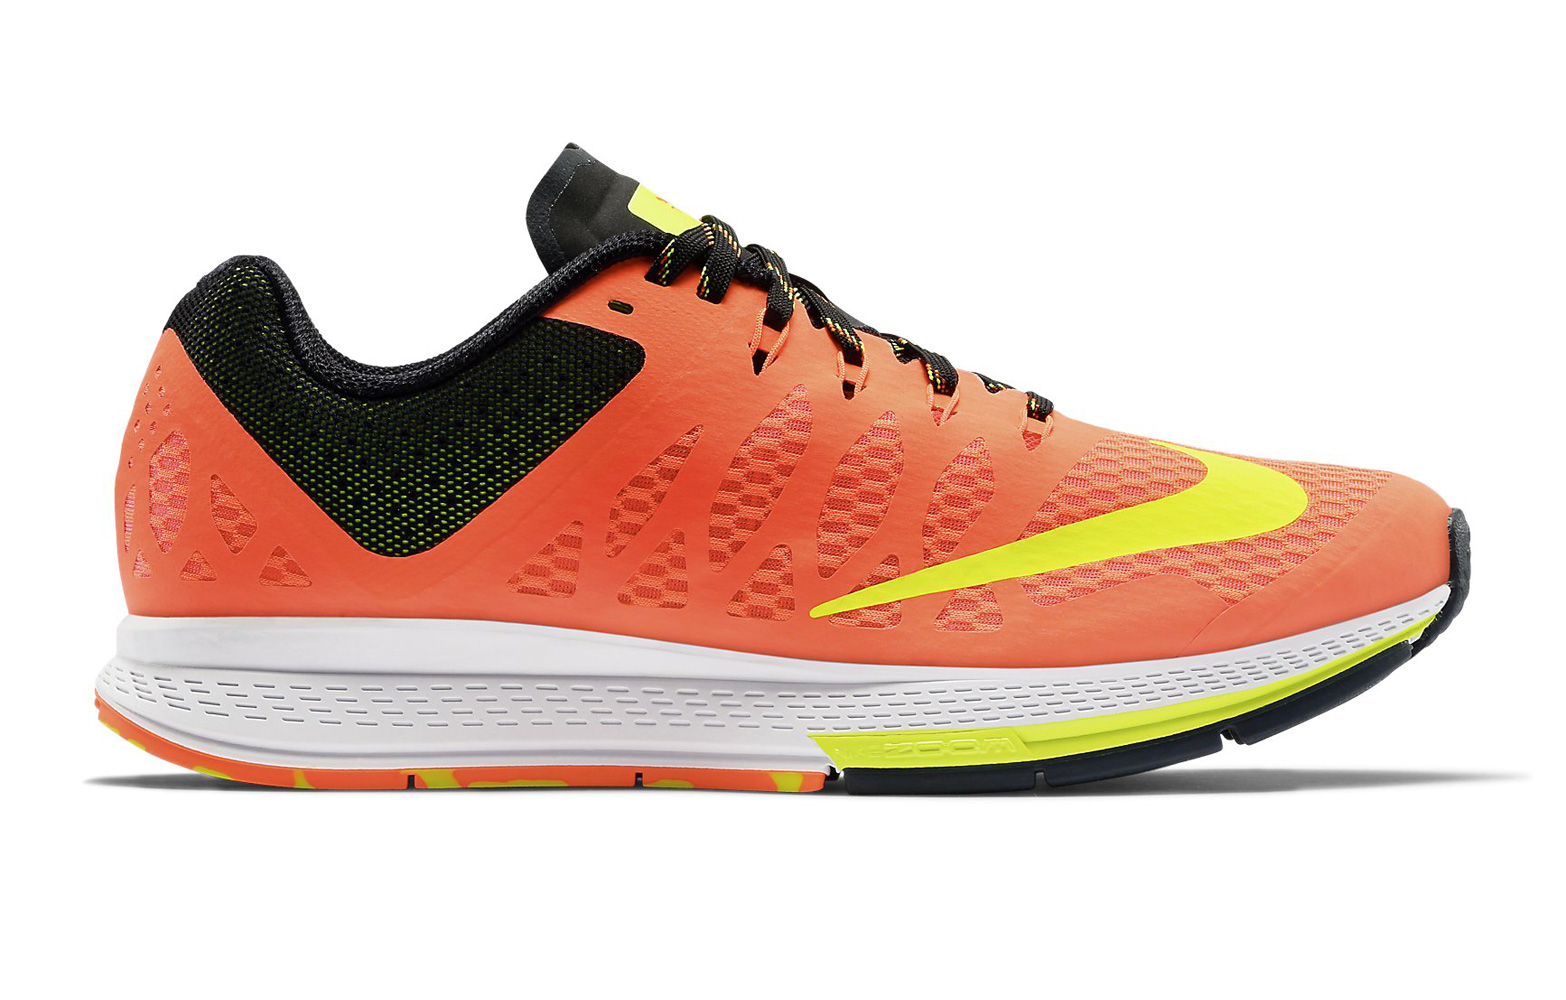 innovative design f92c2 5d862 NIKE ZOOM ELITE 7 Femme